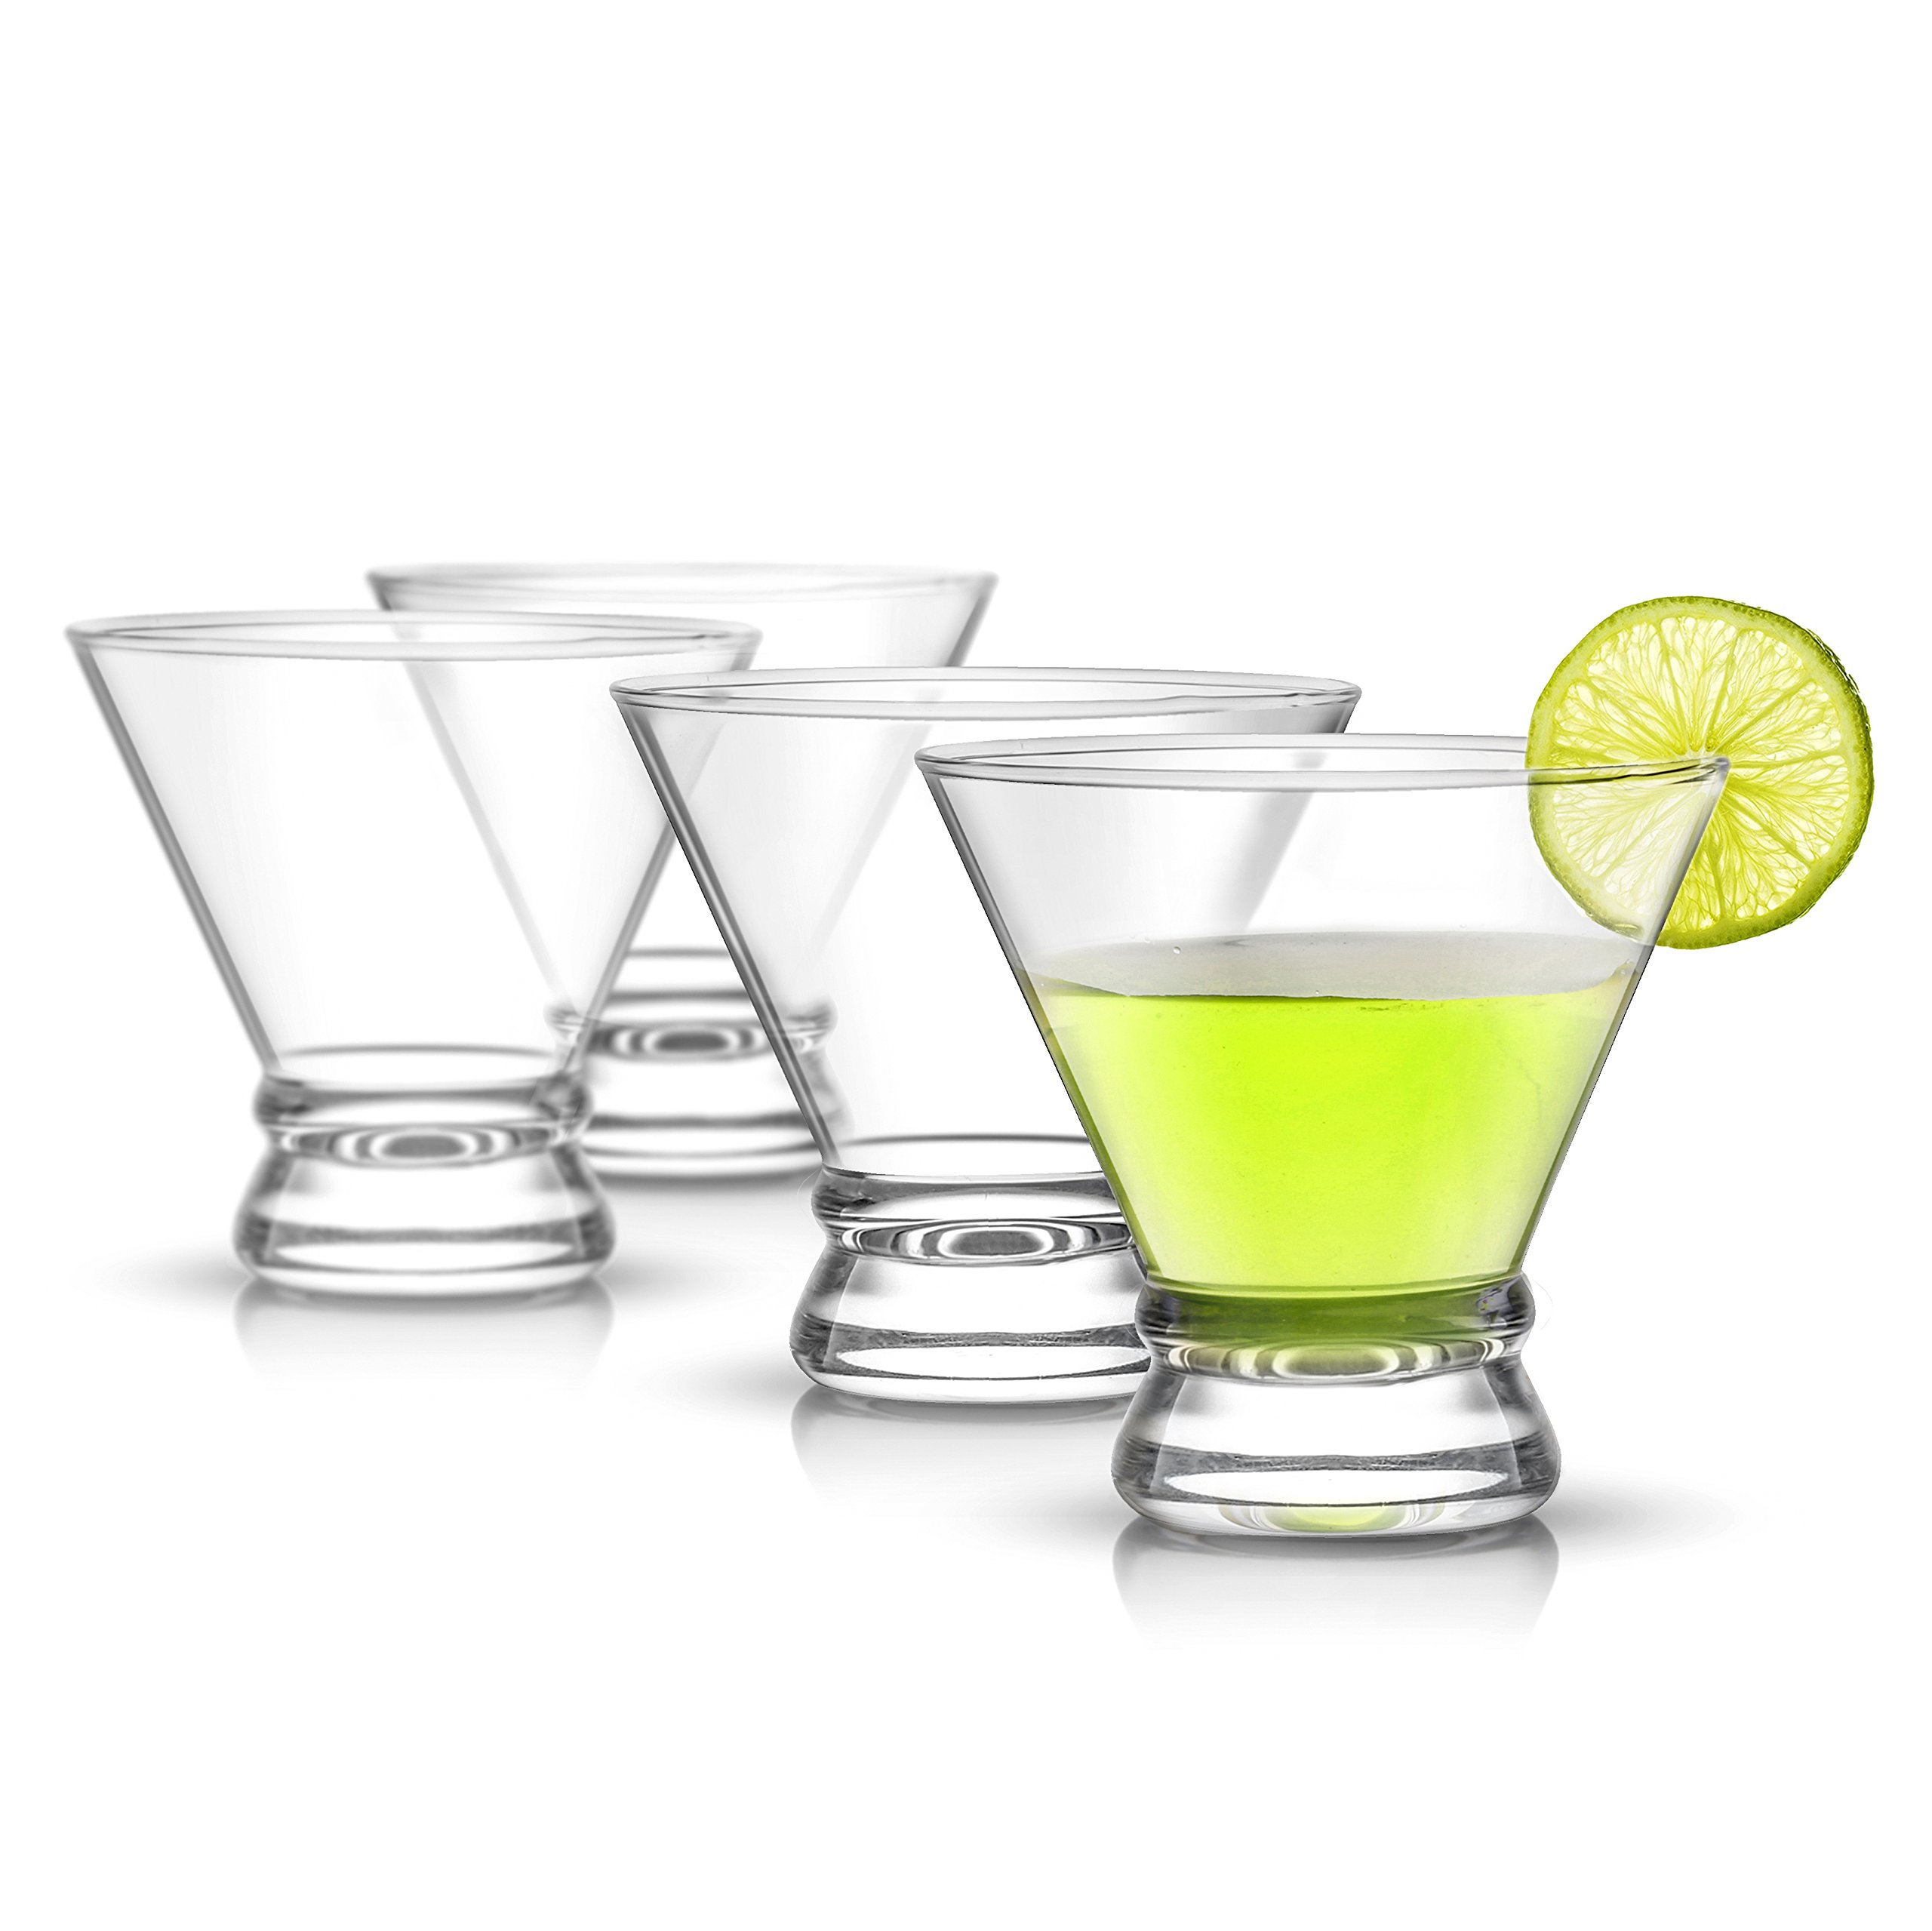 JoyJolt Afina 4-Piece Cocktail Glasses Set, 8-Ounce Martini Glasses by JoyJolt (Image #1)